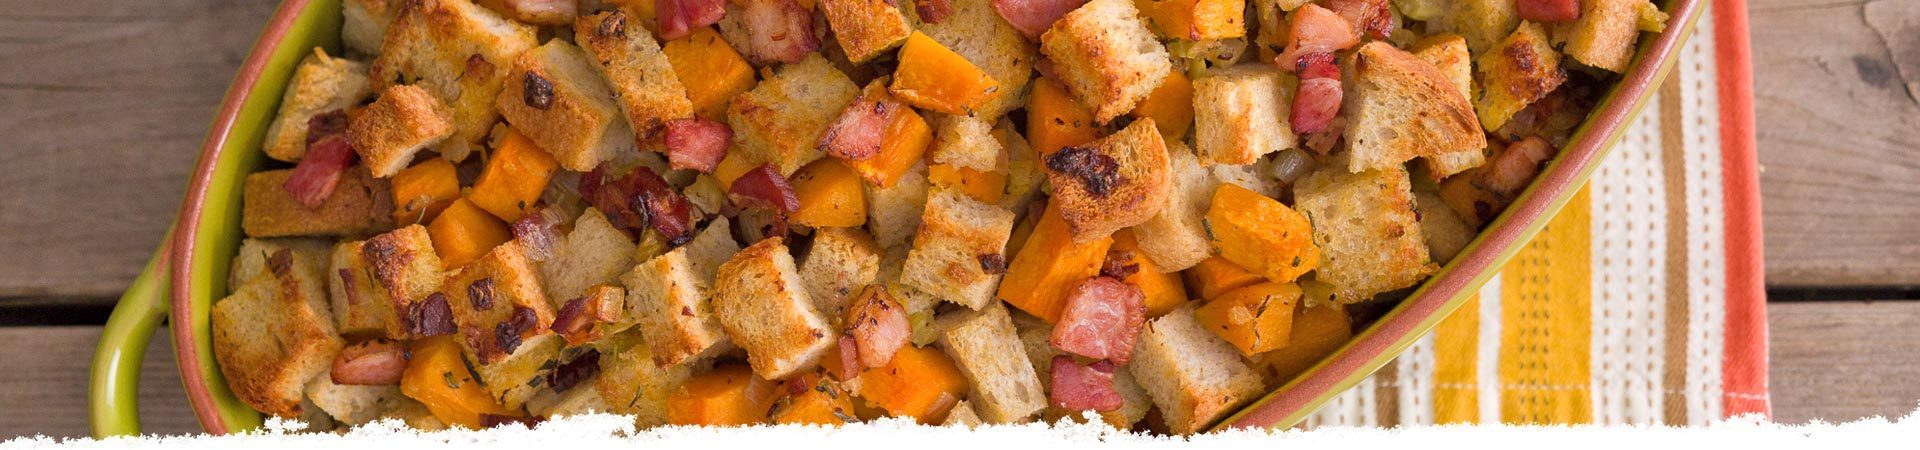 Butternut Squash and Pancetta Stuffing